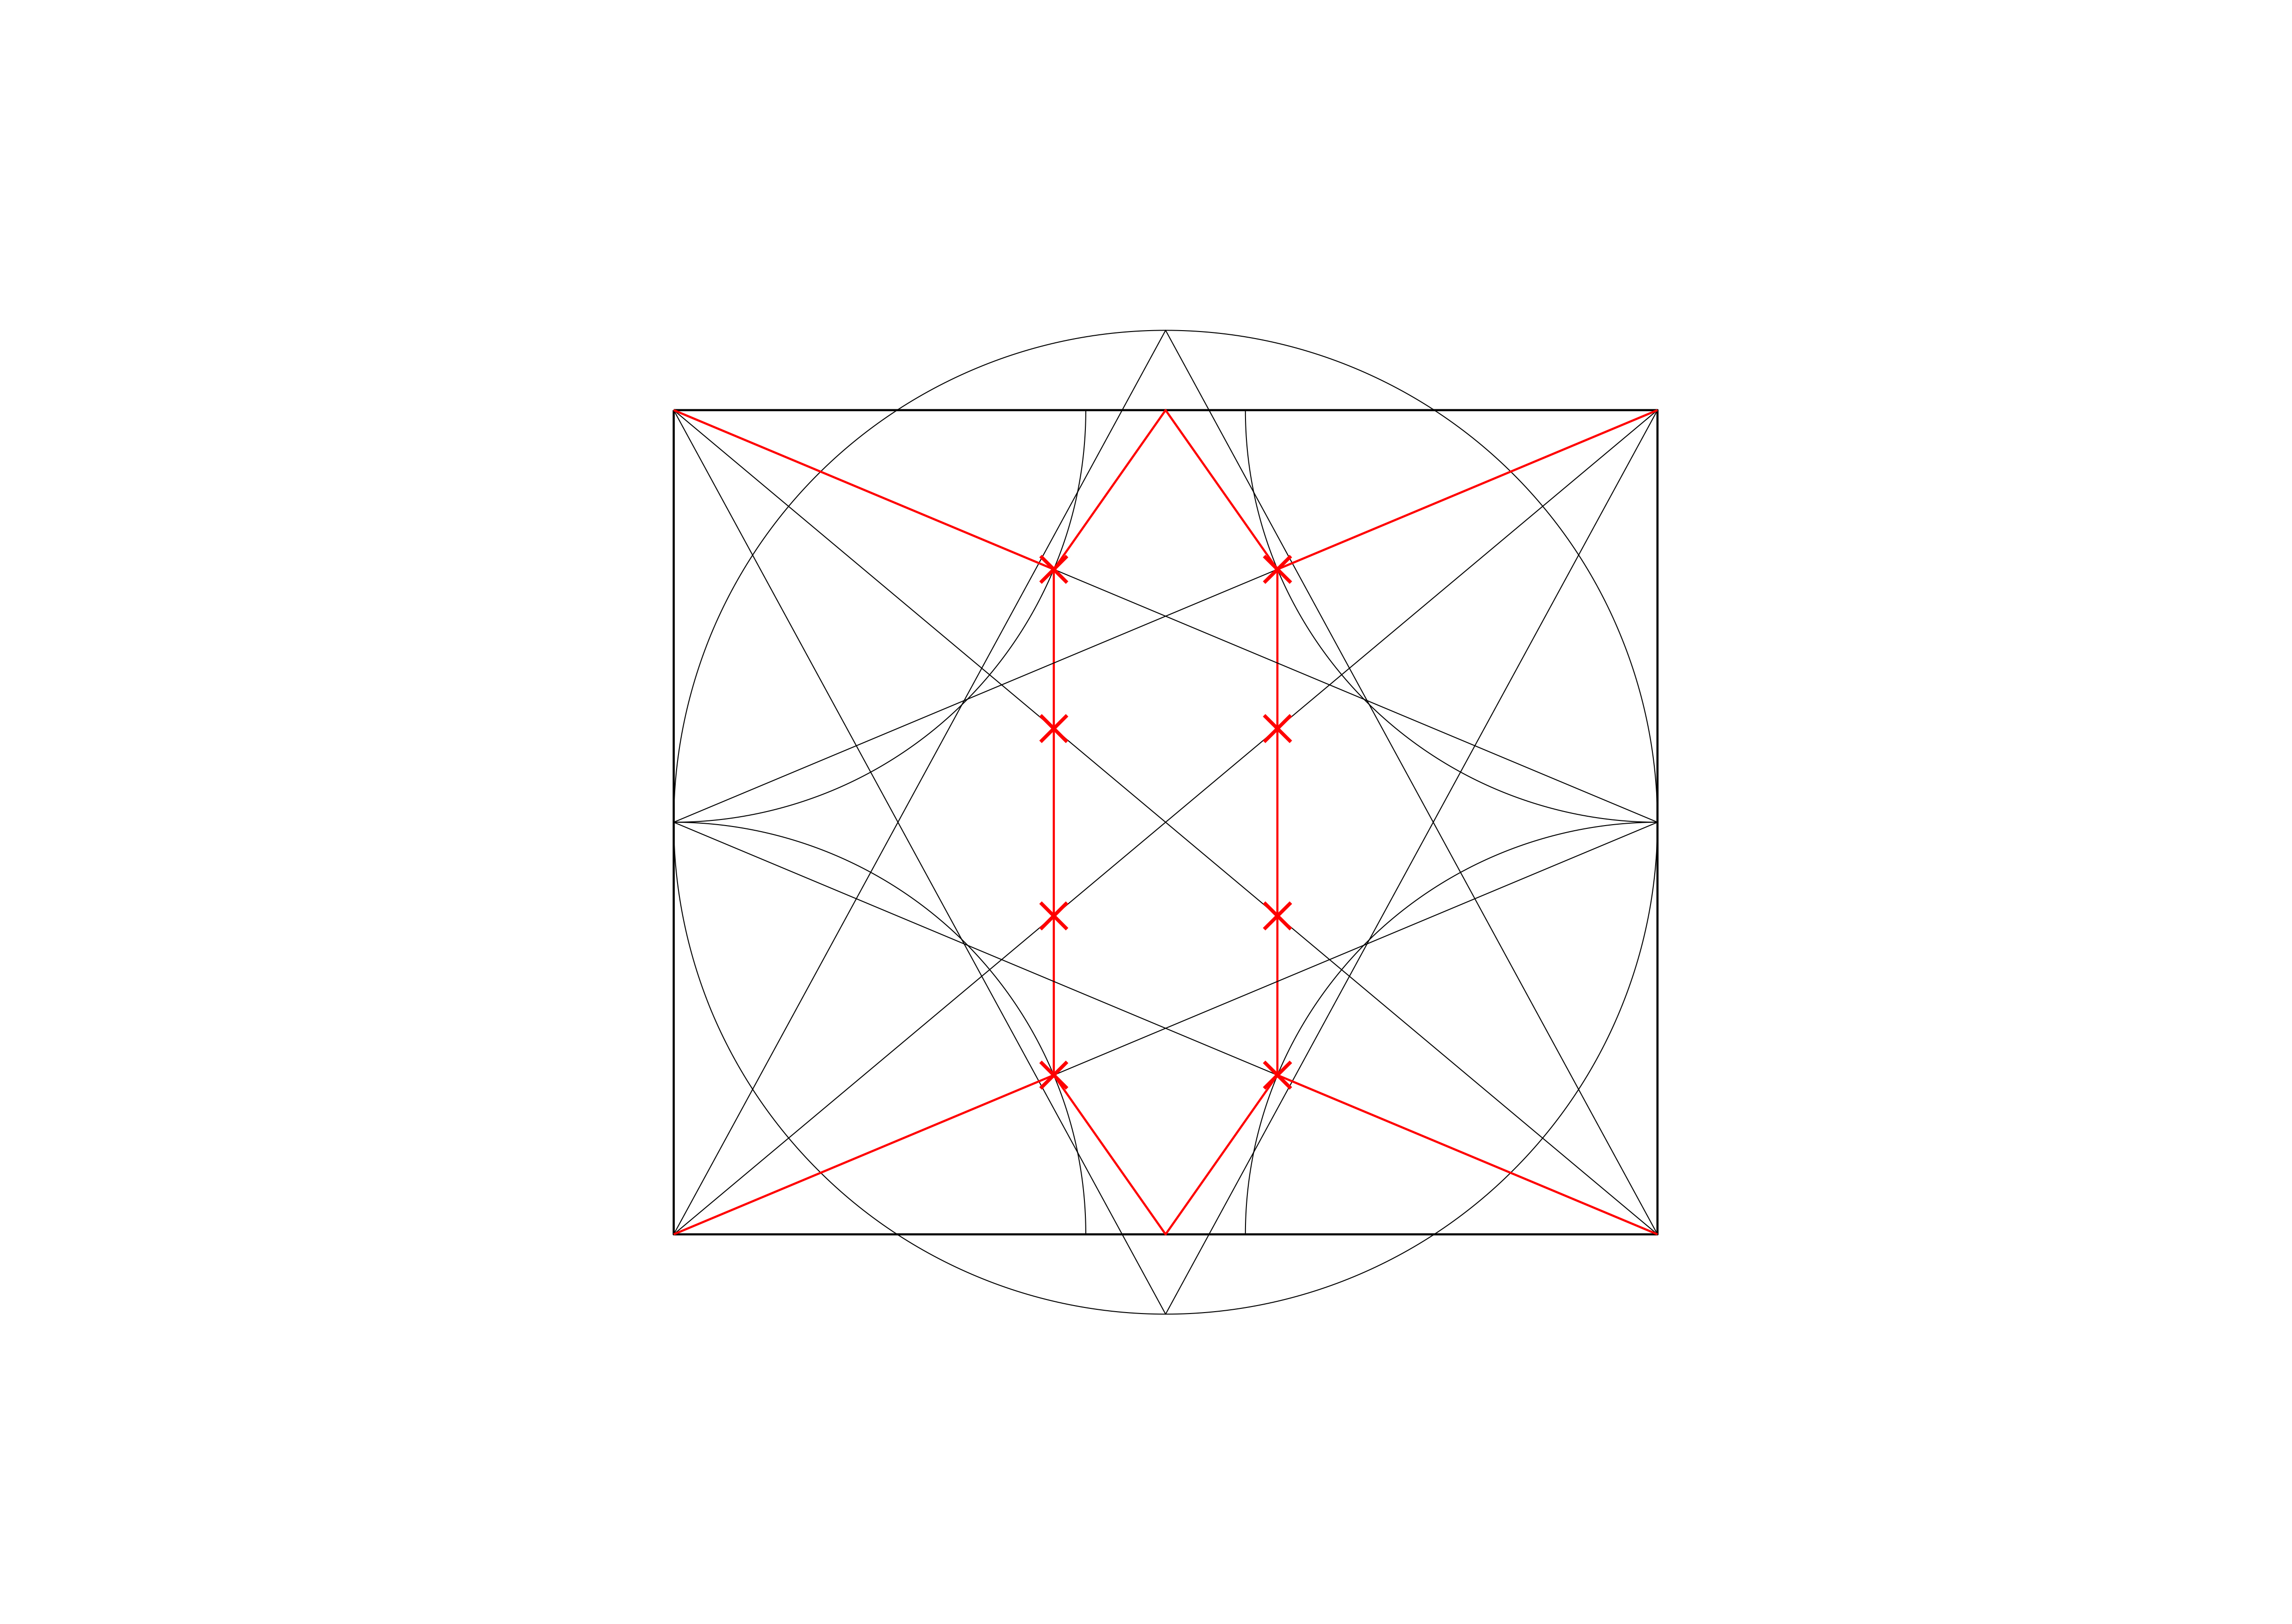 <i>where the intersection between these liernes and the diagonals positions the inner ring of bosses and the central saltire</i>